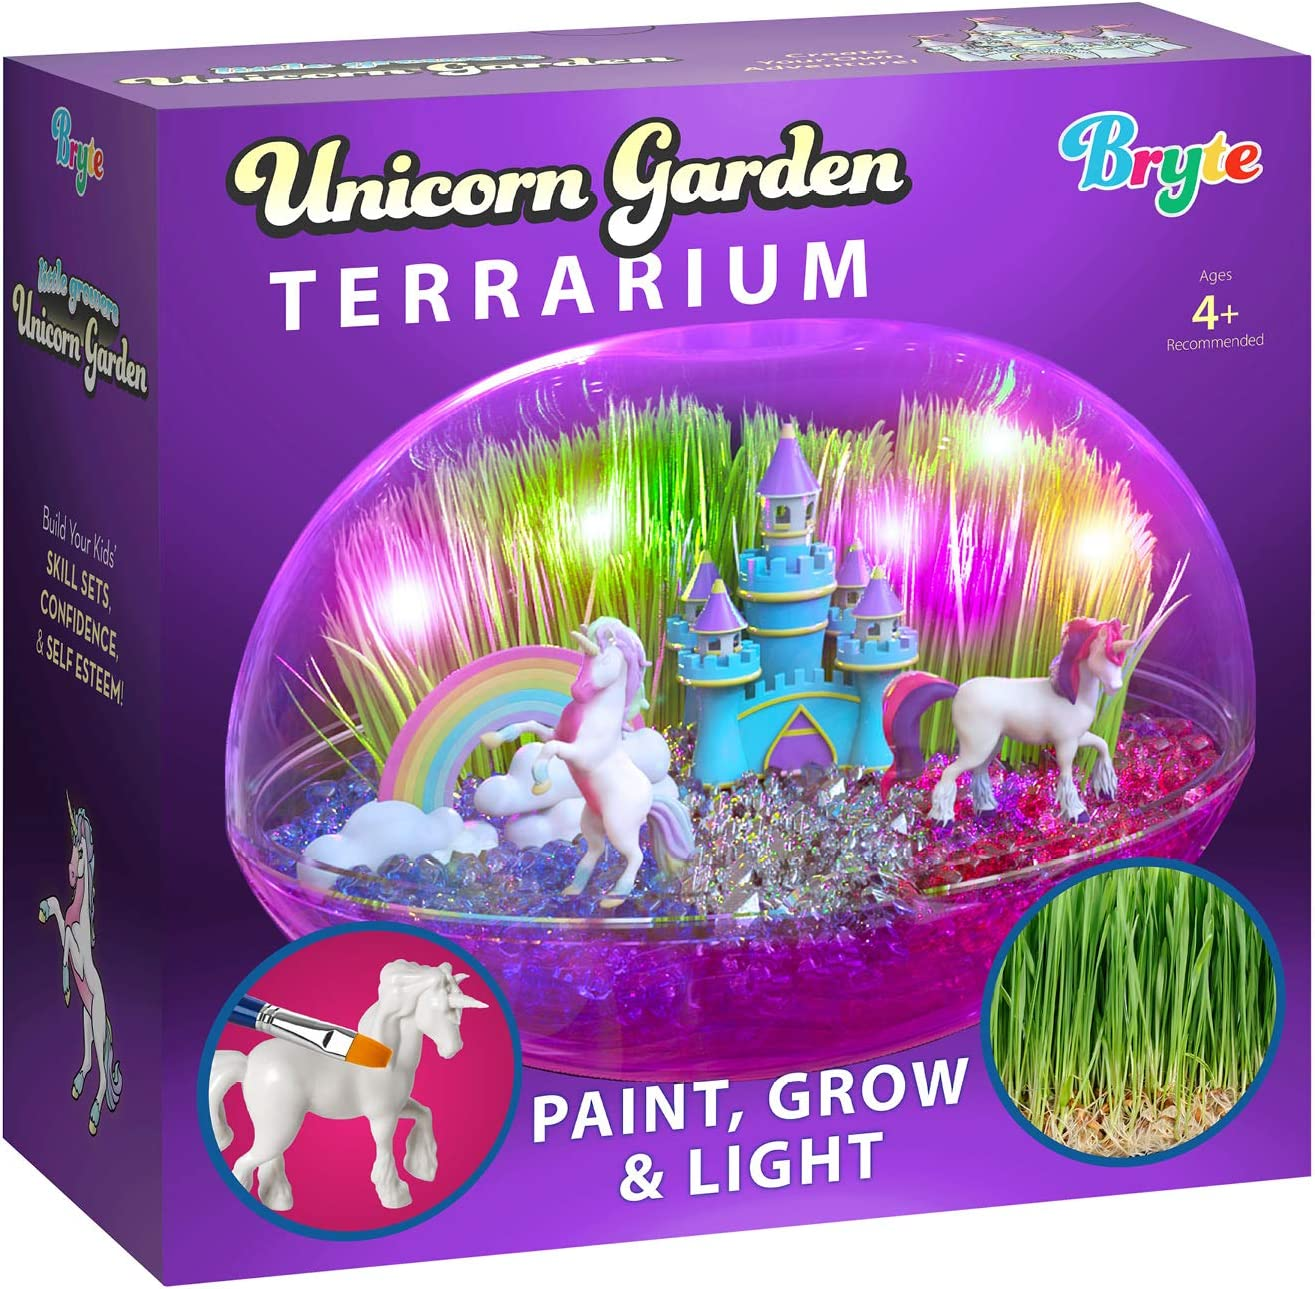 Little Growers Unicorn Terrarium Kit for Kids with Rainbow Fairy Lights and Paintable Figurines - Plant and Grow Light Up Garden - Science and Craft Kits for Girls and Boys - STEM Age Gifts and Toys